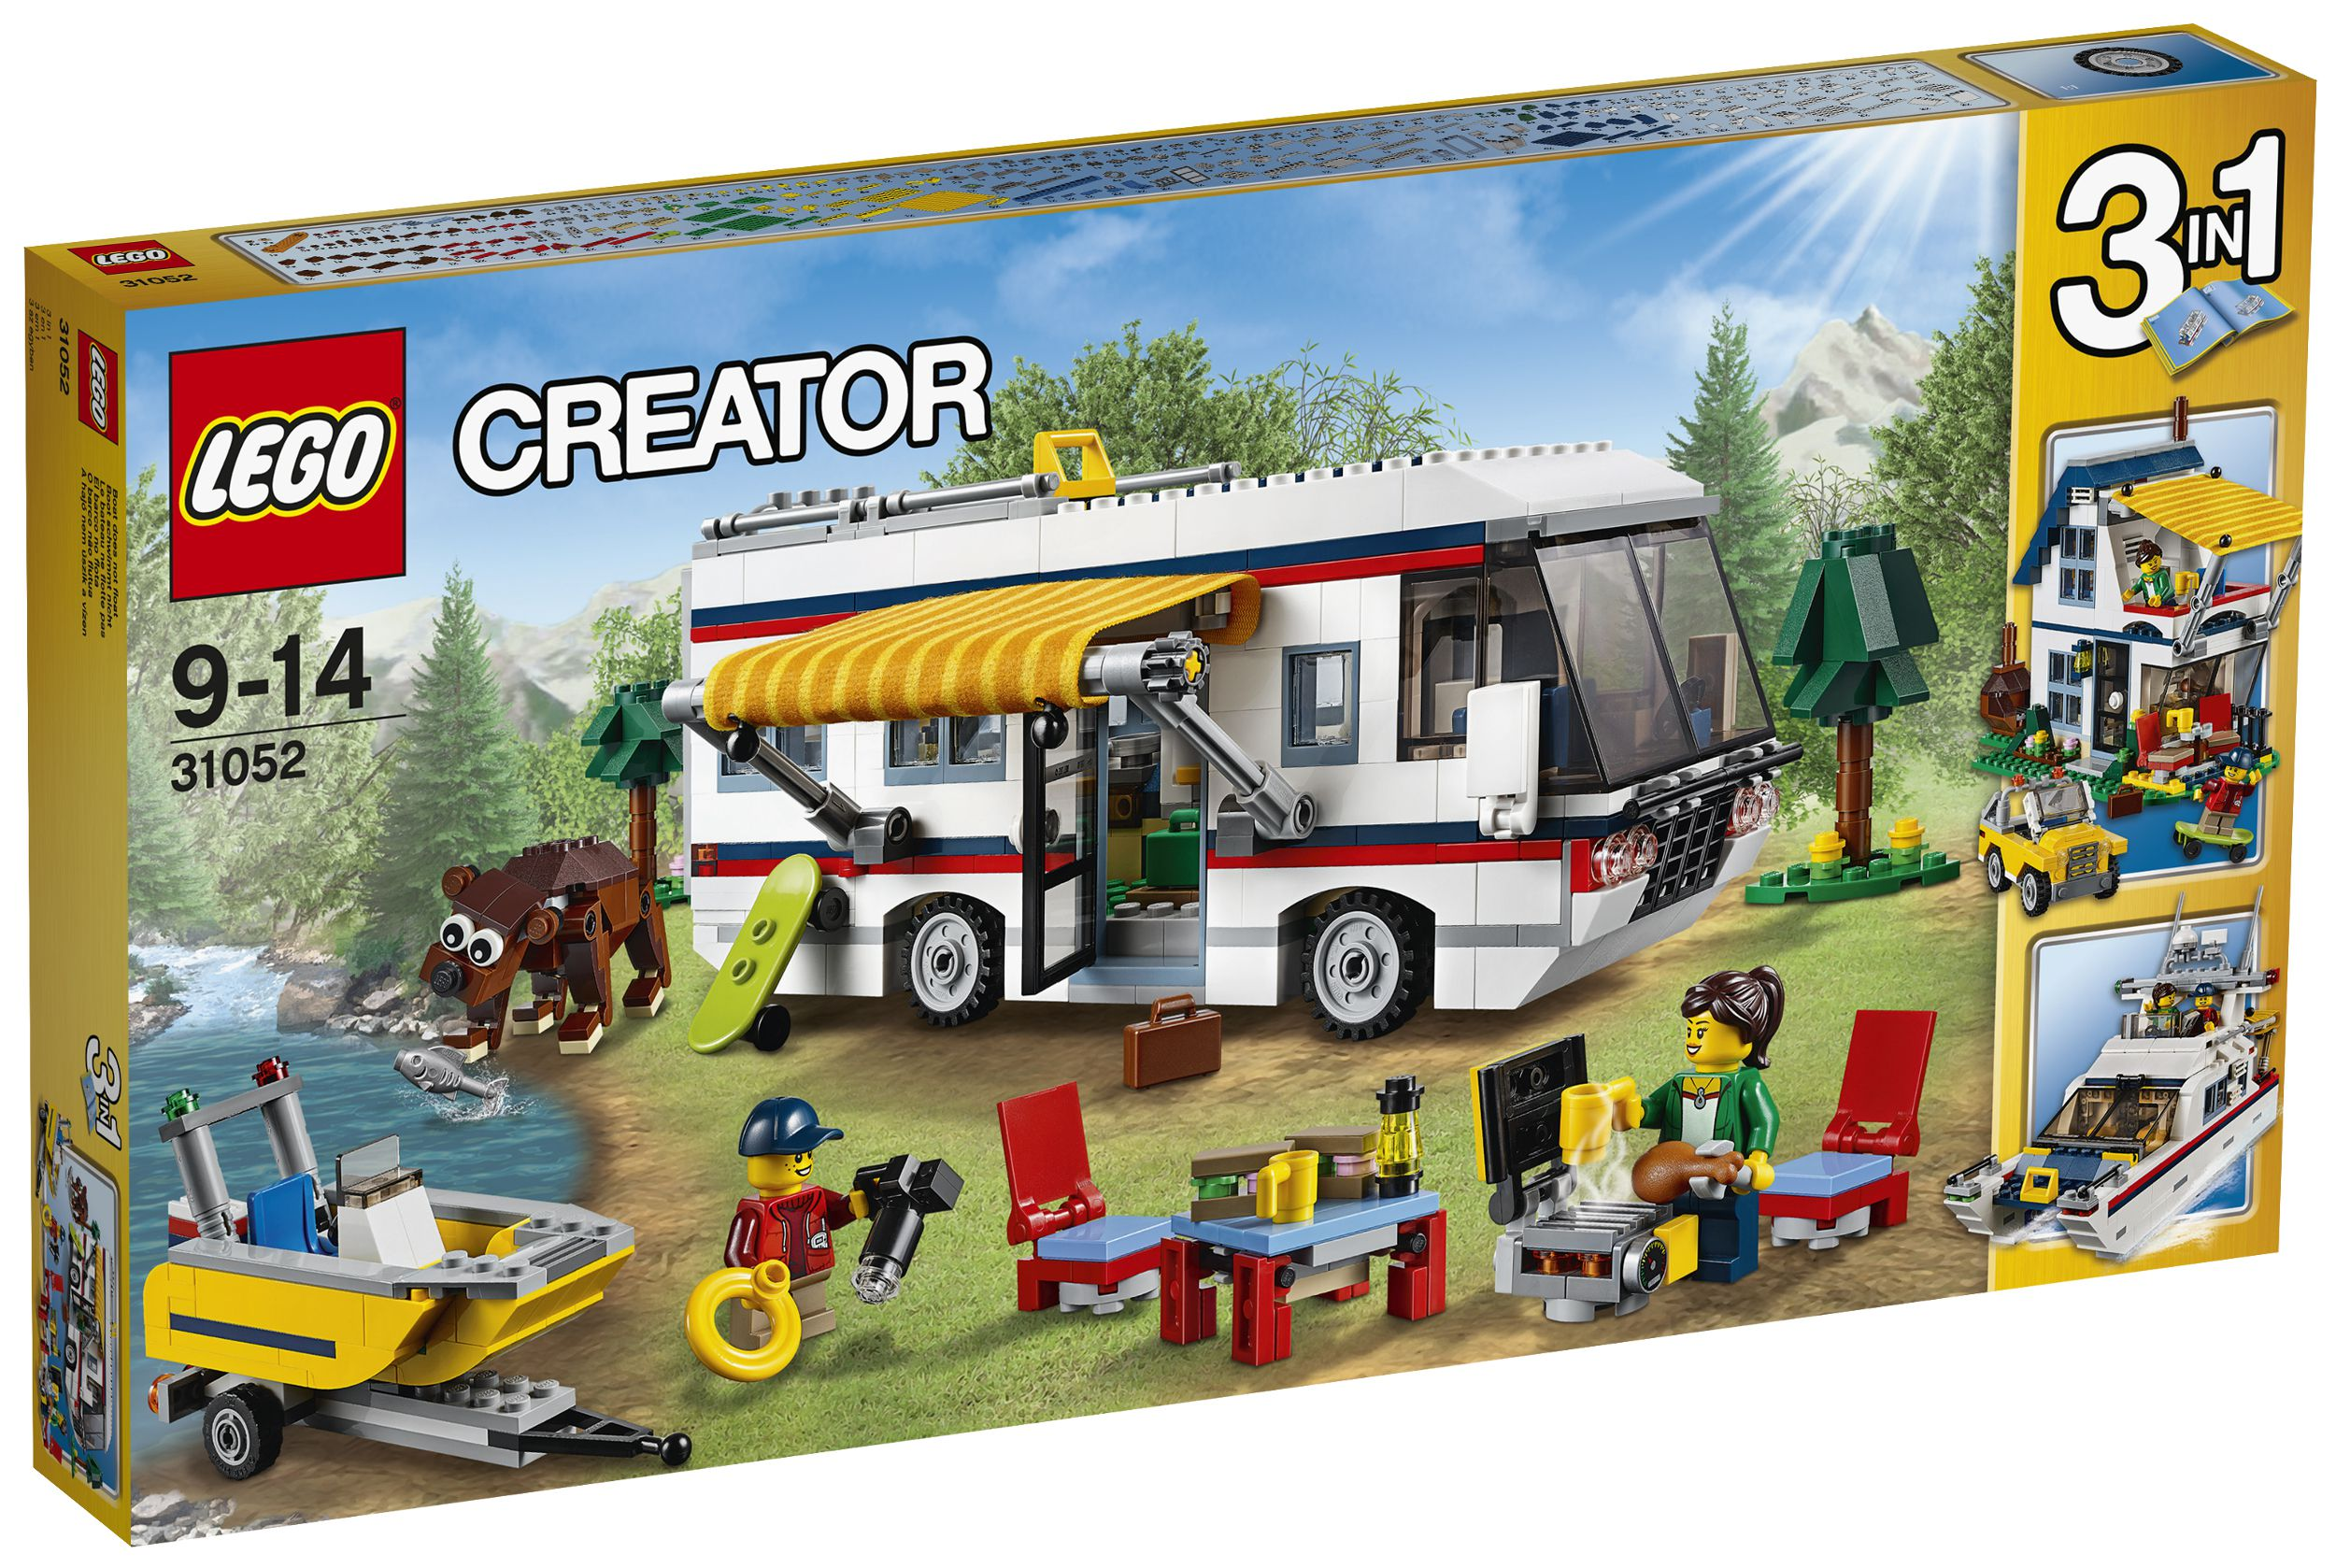 lego creator 31052 le camping car achat vente assemblage construction cdiscount. Black Bedroom Furniture Sets. Home Design Ideas